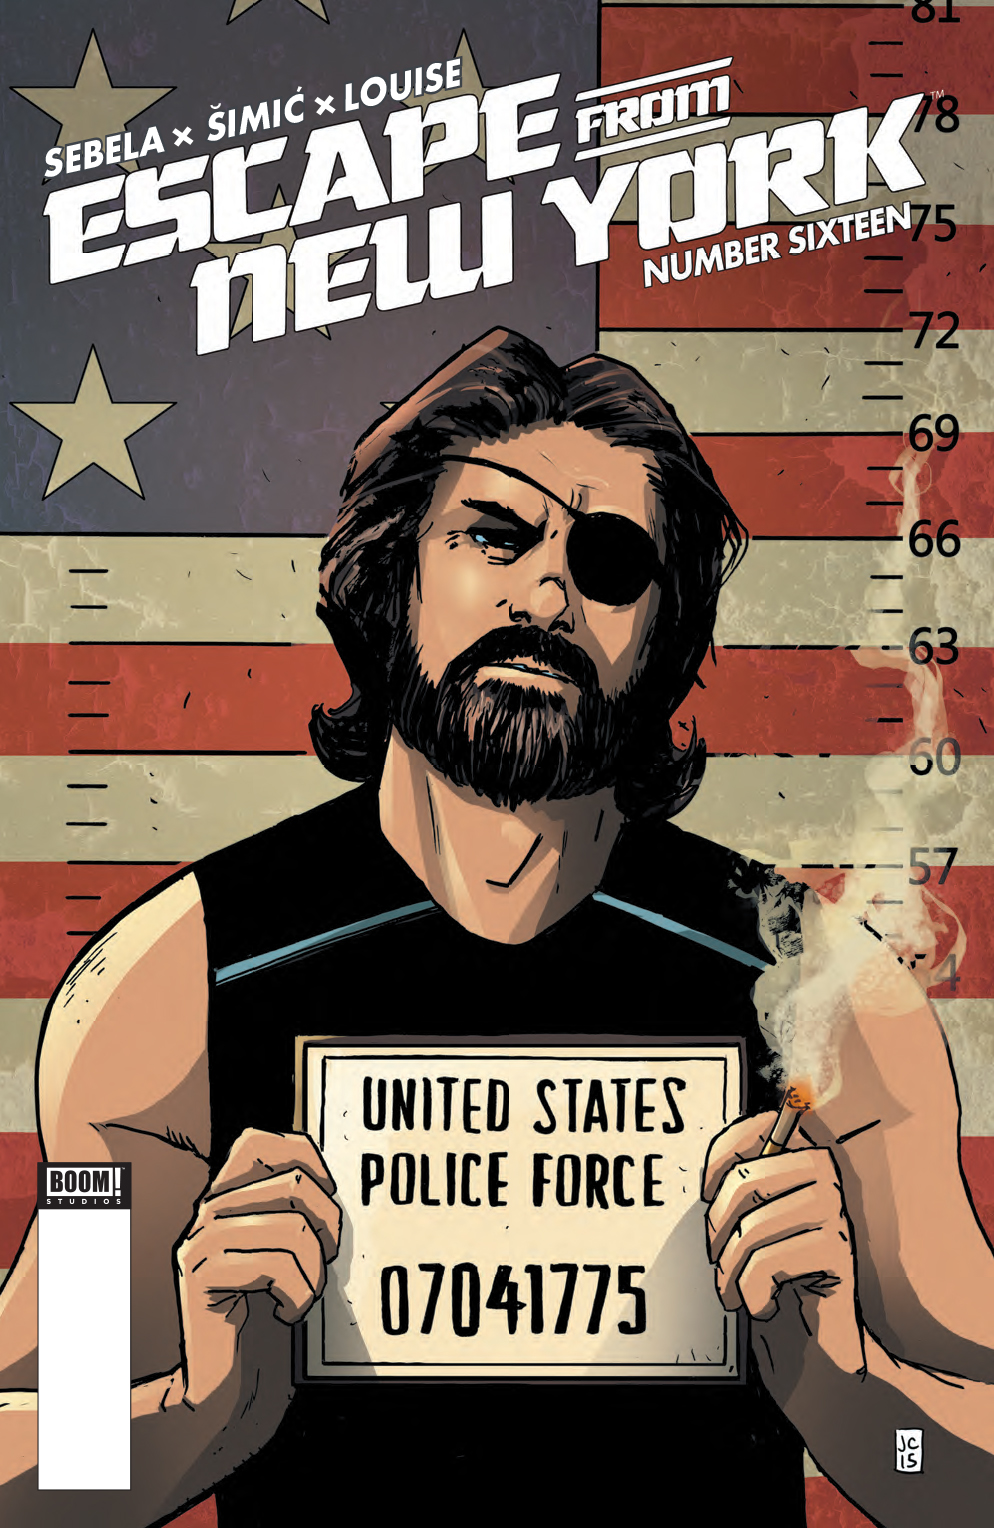 Escape from New York #16 - Final Issue Preview